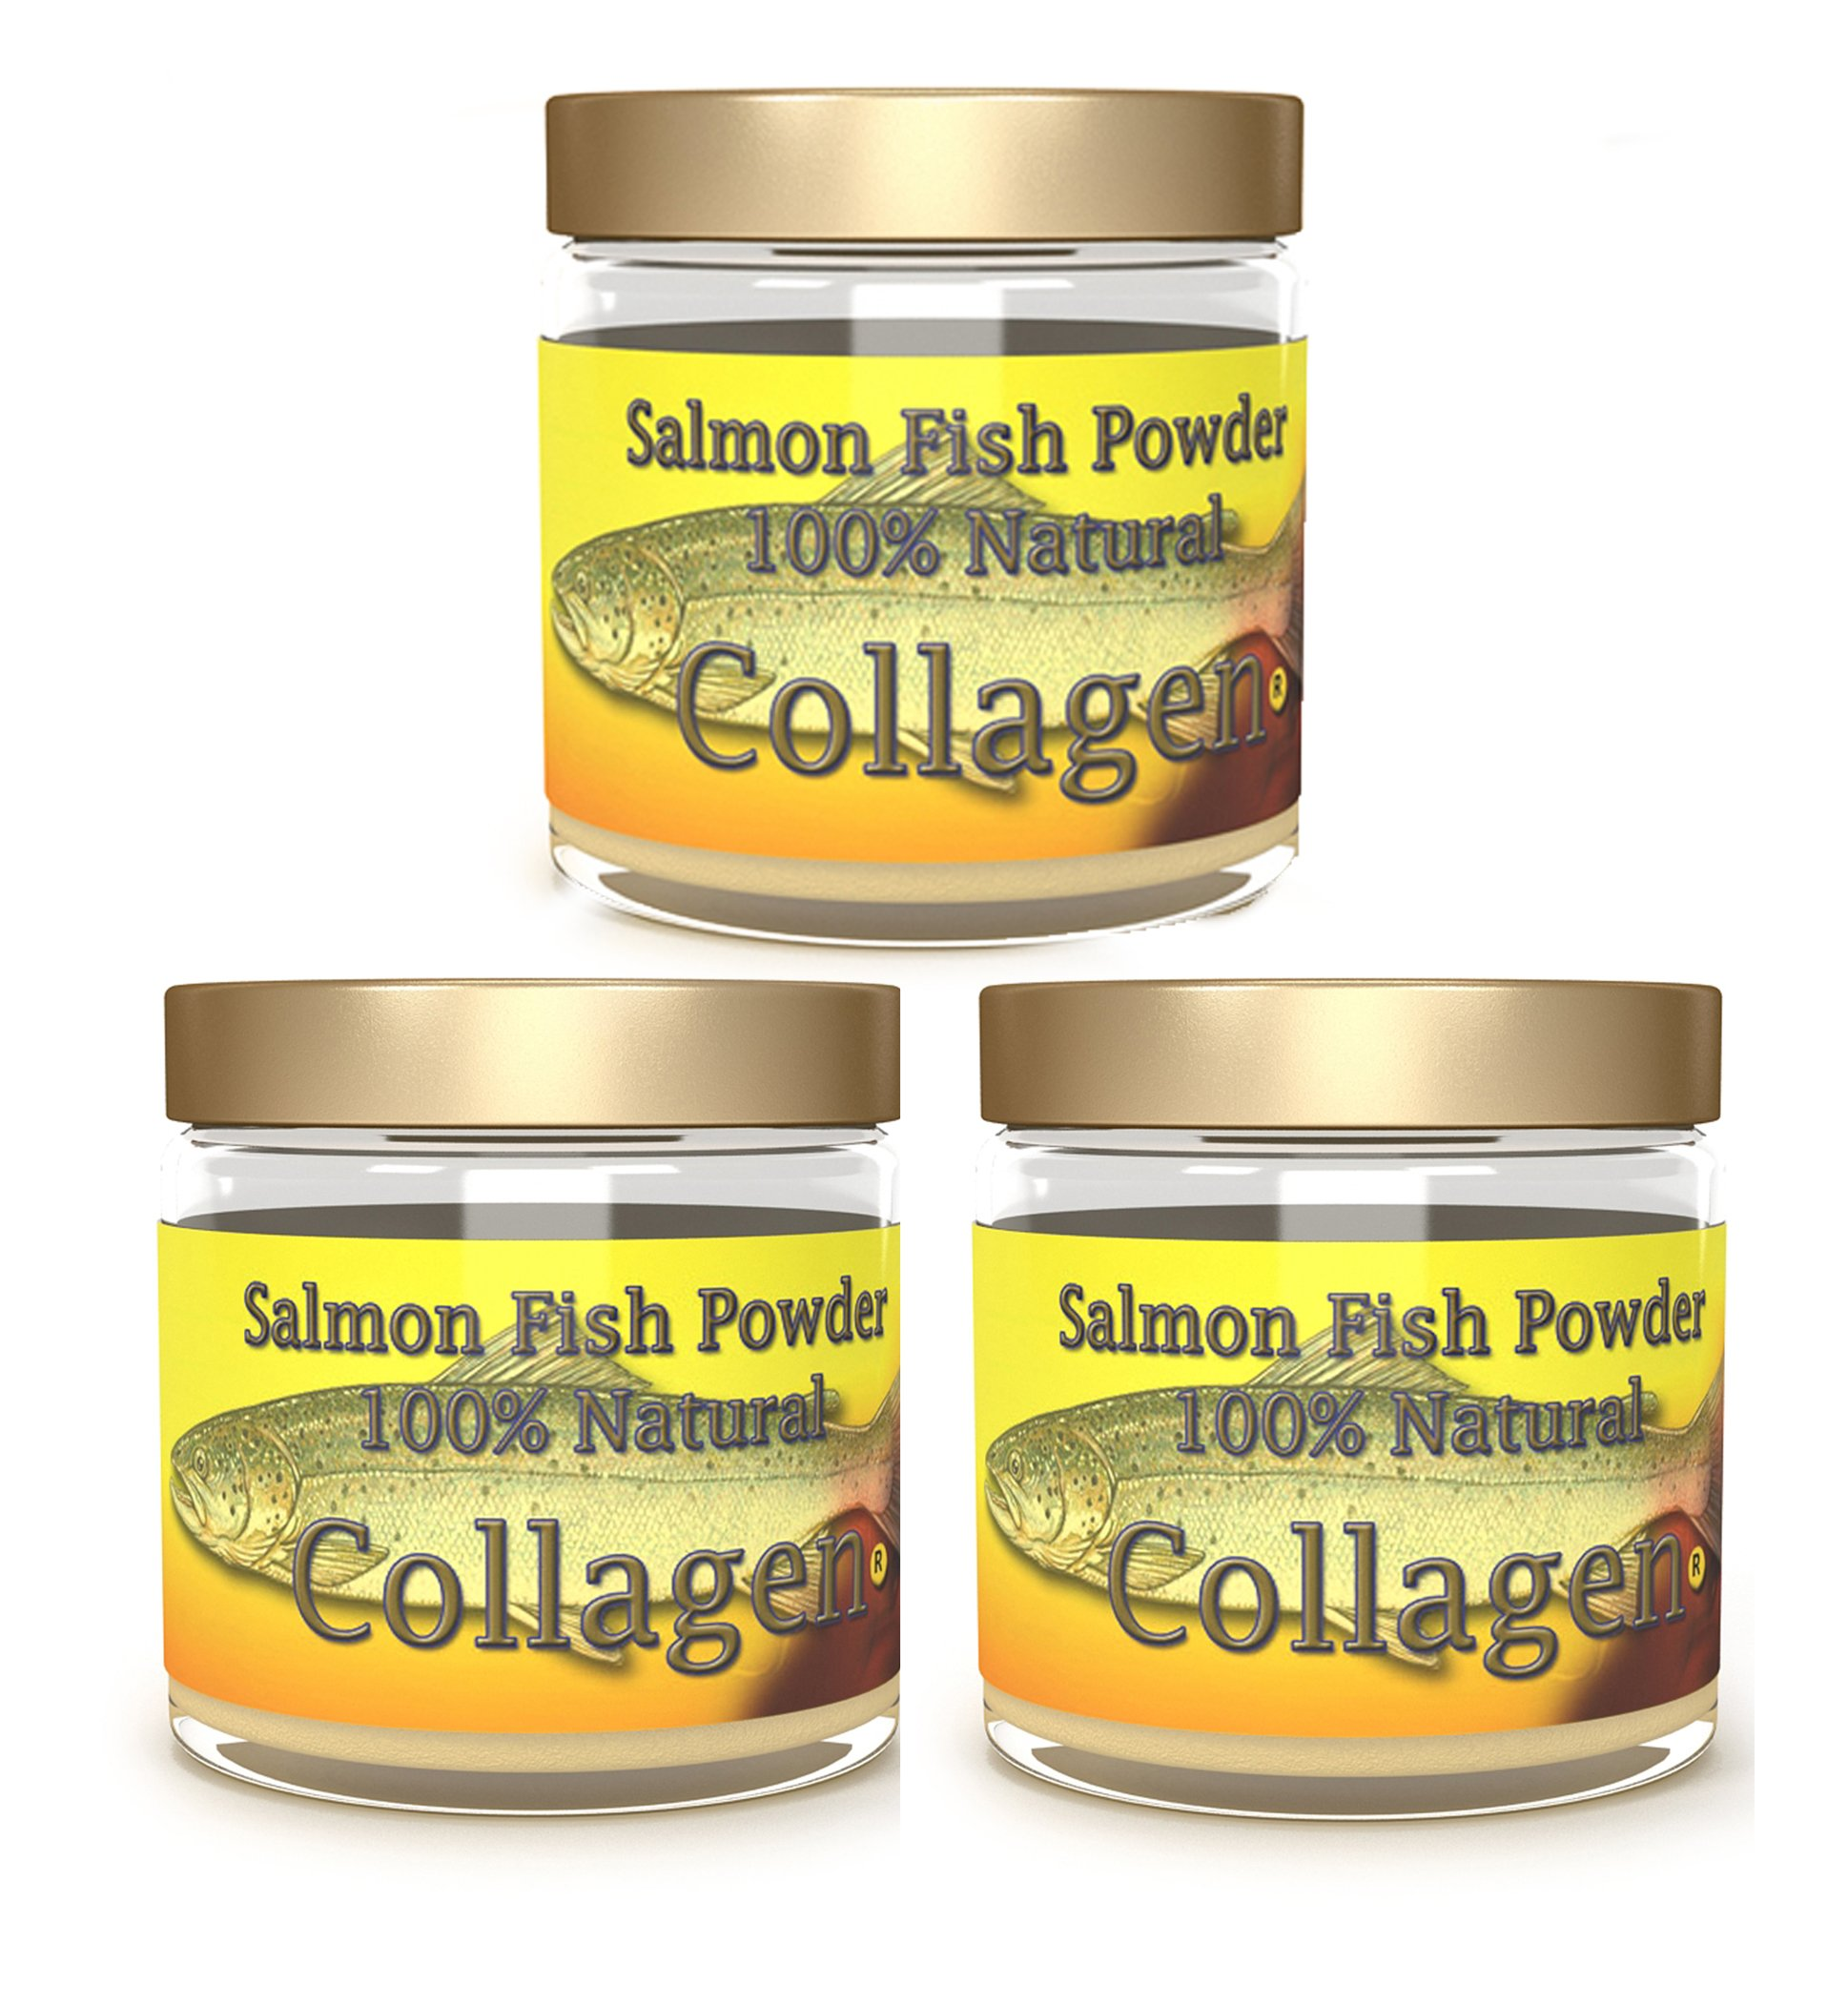 SALCOLL COLLAGEN Salmon Collagen Powder - Organic Collagen for Aids Tissue Cartilage & Bone Regeneration for Extra Energy Mobility & Vitality - 3 Pack